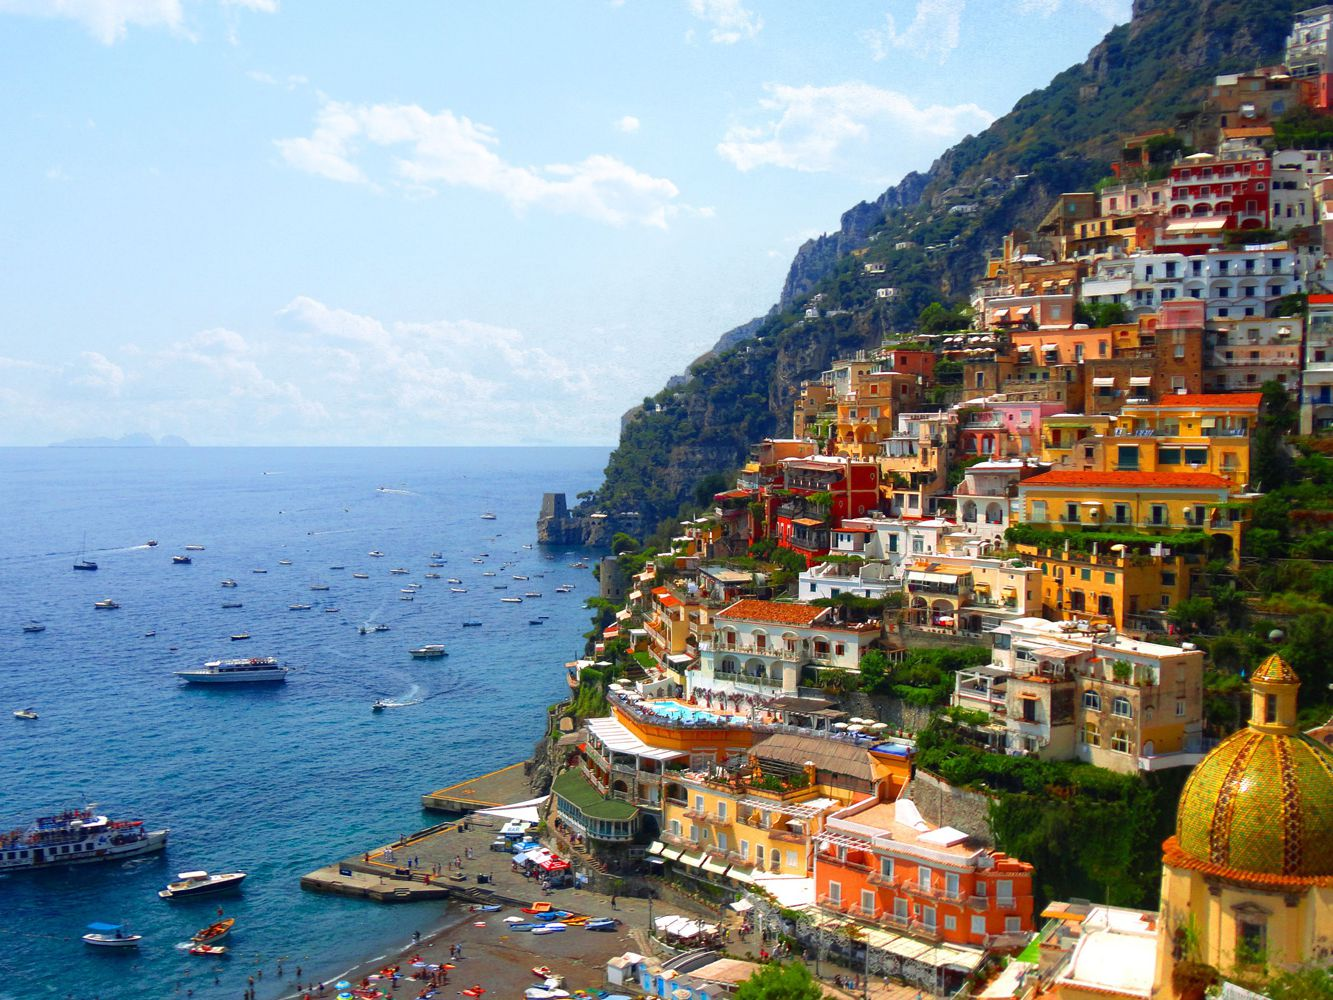 Amalfi Coast Tourist Map and Travel Information on map of oregon coast towns, map of italy, map of amalfi coast positano, map of amtrak stations, map of the amalfi coast, map of california coast towns, map of maine coast towns, map showing amalfi coast italy, map of sorrento and amalfi coast, map of florida gulf coast towns, map of asia pacific, map of amalfi coast drive, map of tuscany, map of east coast beaches, map of capri and amalfi coast, map of amalfi coast area, map of rome pompeii amalfi coast, map of rome including amalfi coast, map of naples and amalfi coast,